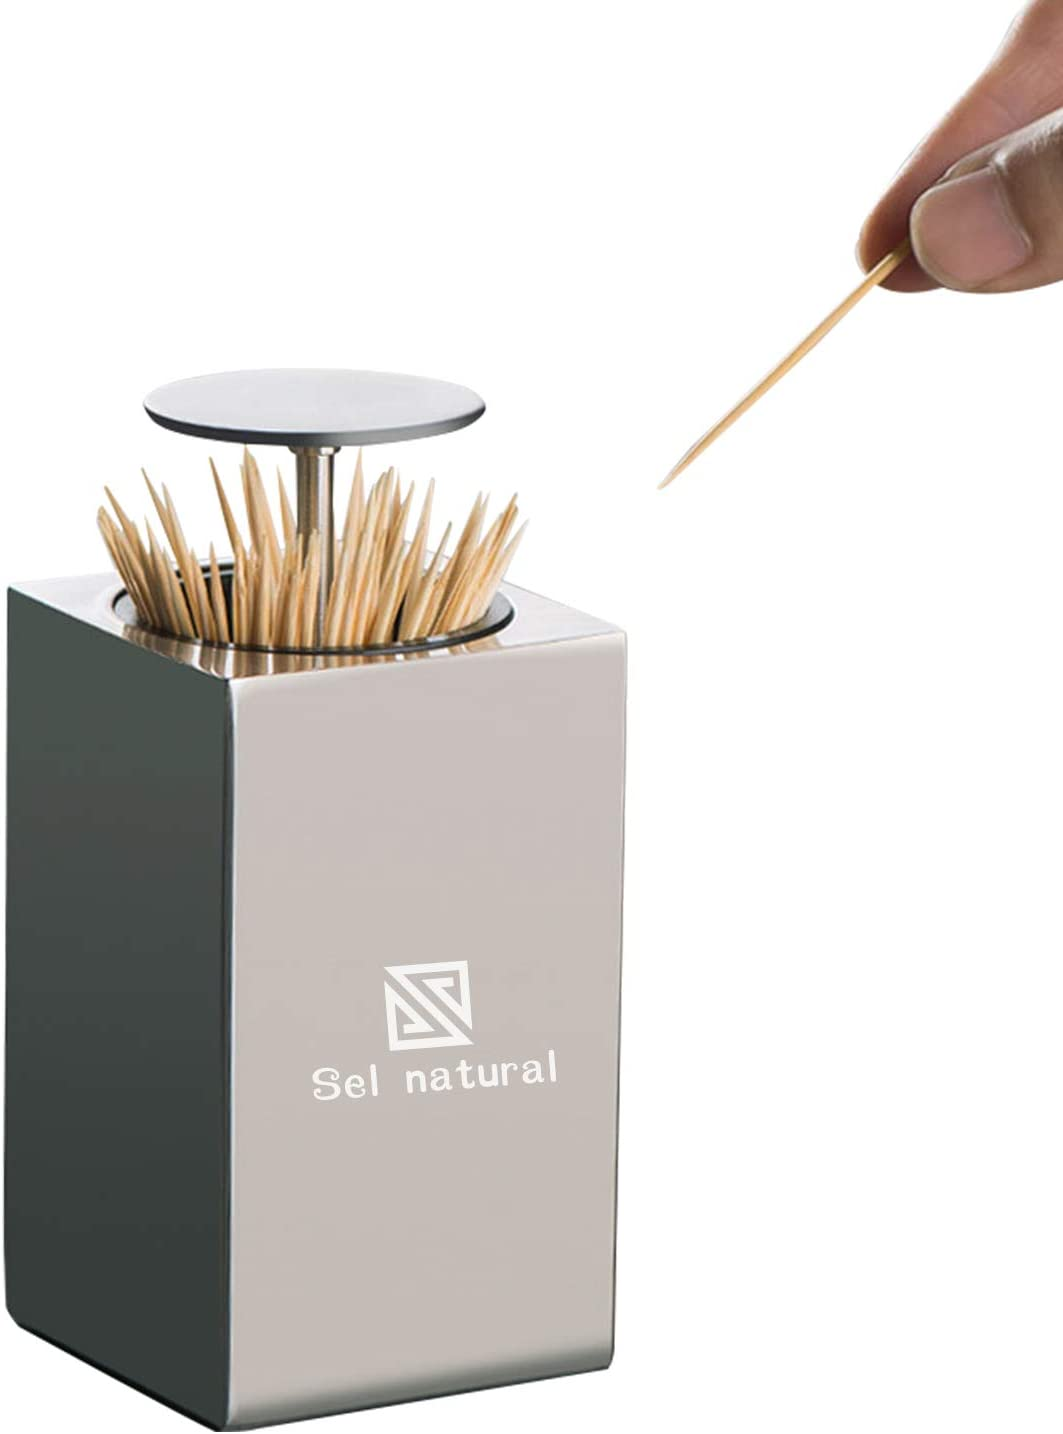 Automatic Stainless Steel Toothpick Holder - Metal Cube Toothpick Dispenser Box Click Open, Modern Storage Bottle for Bamboo Toothpick